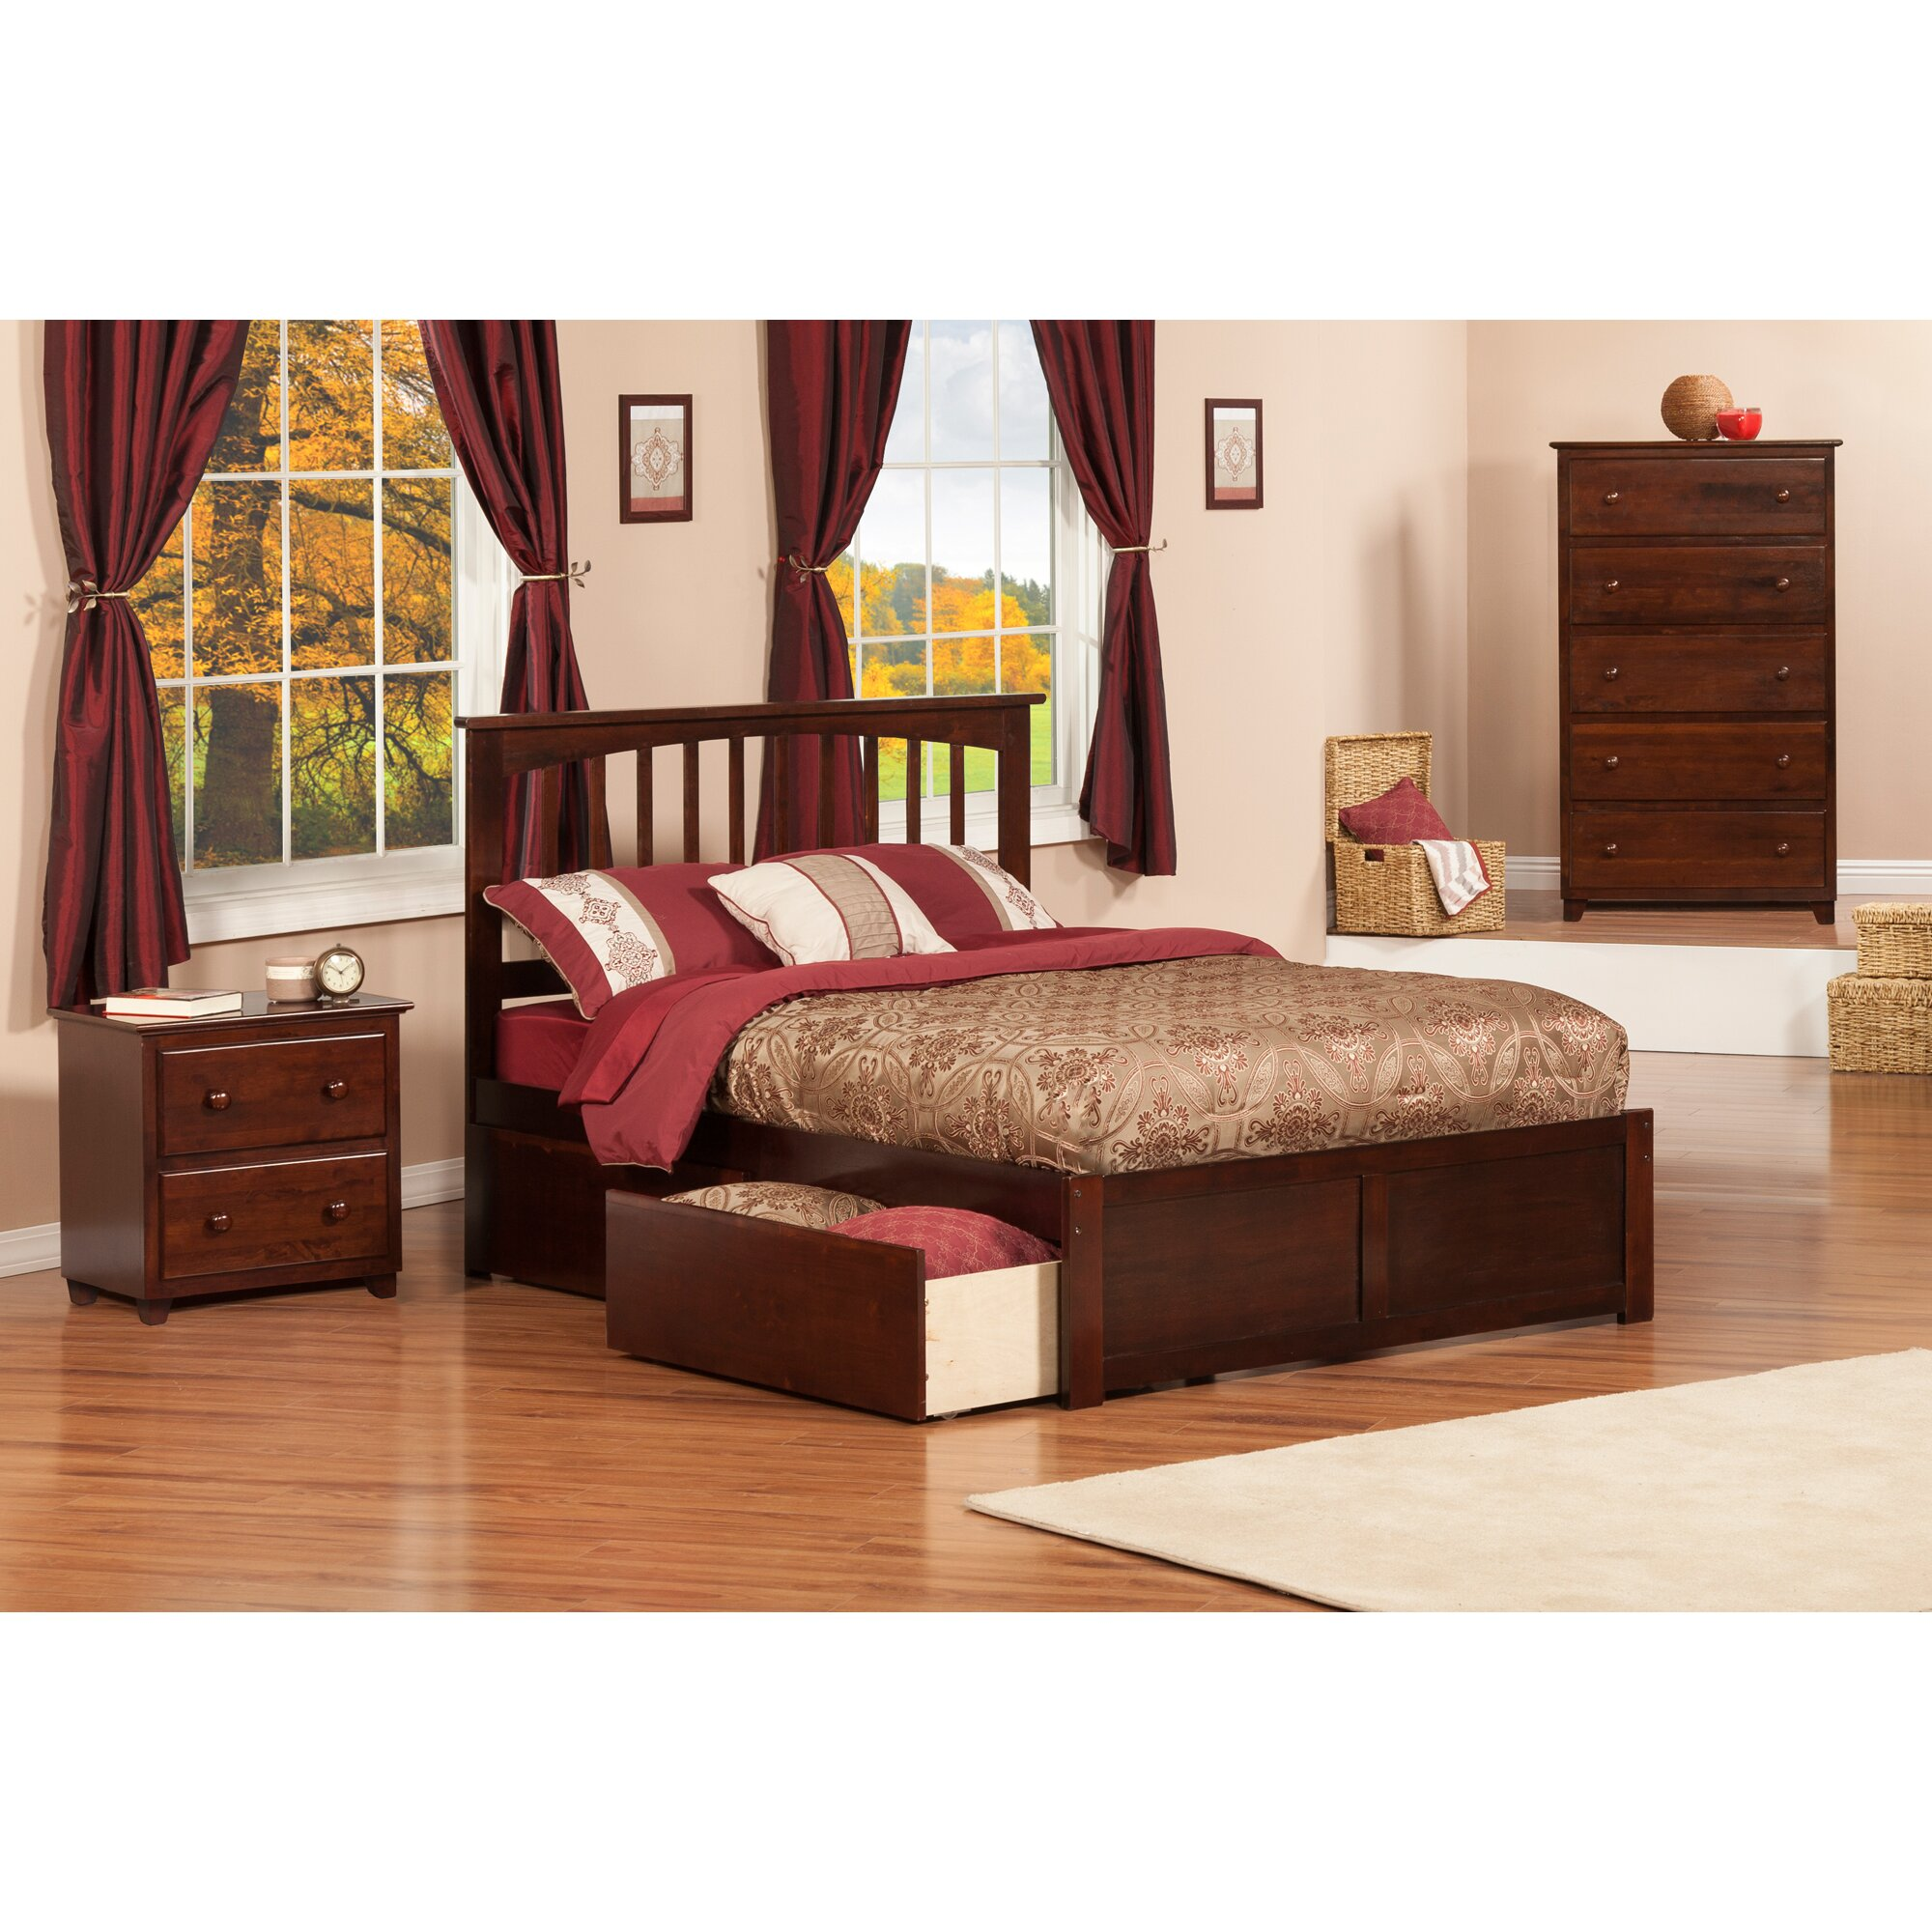 Enrique Mission Panel 3 Piece Bedroom Set